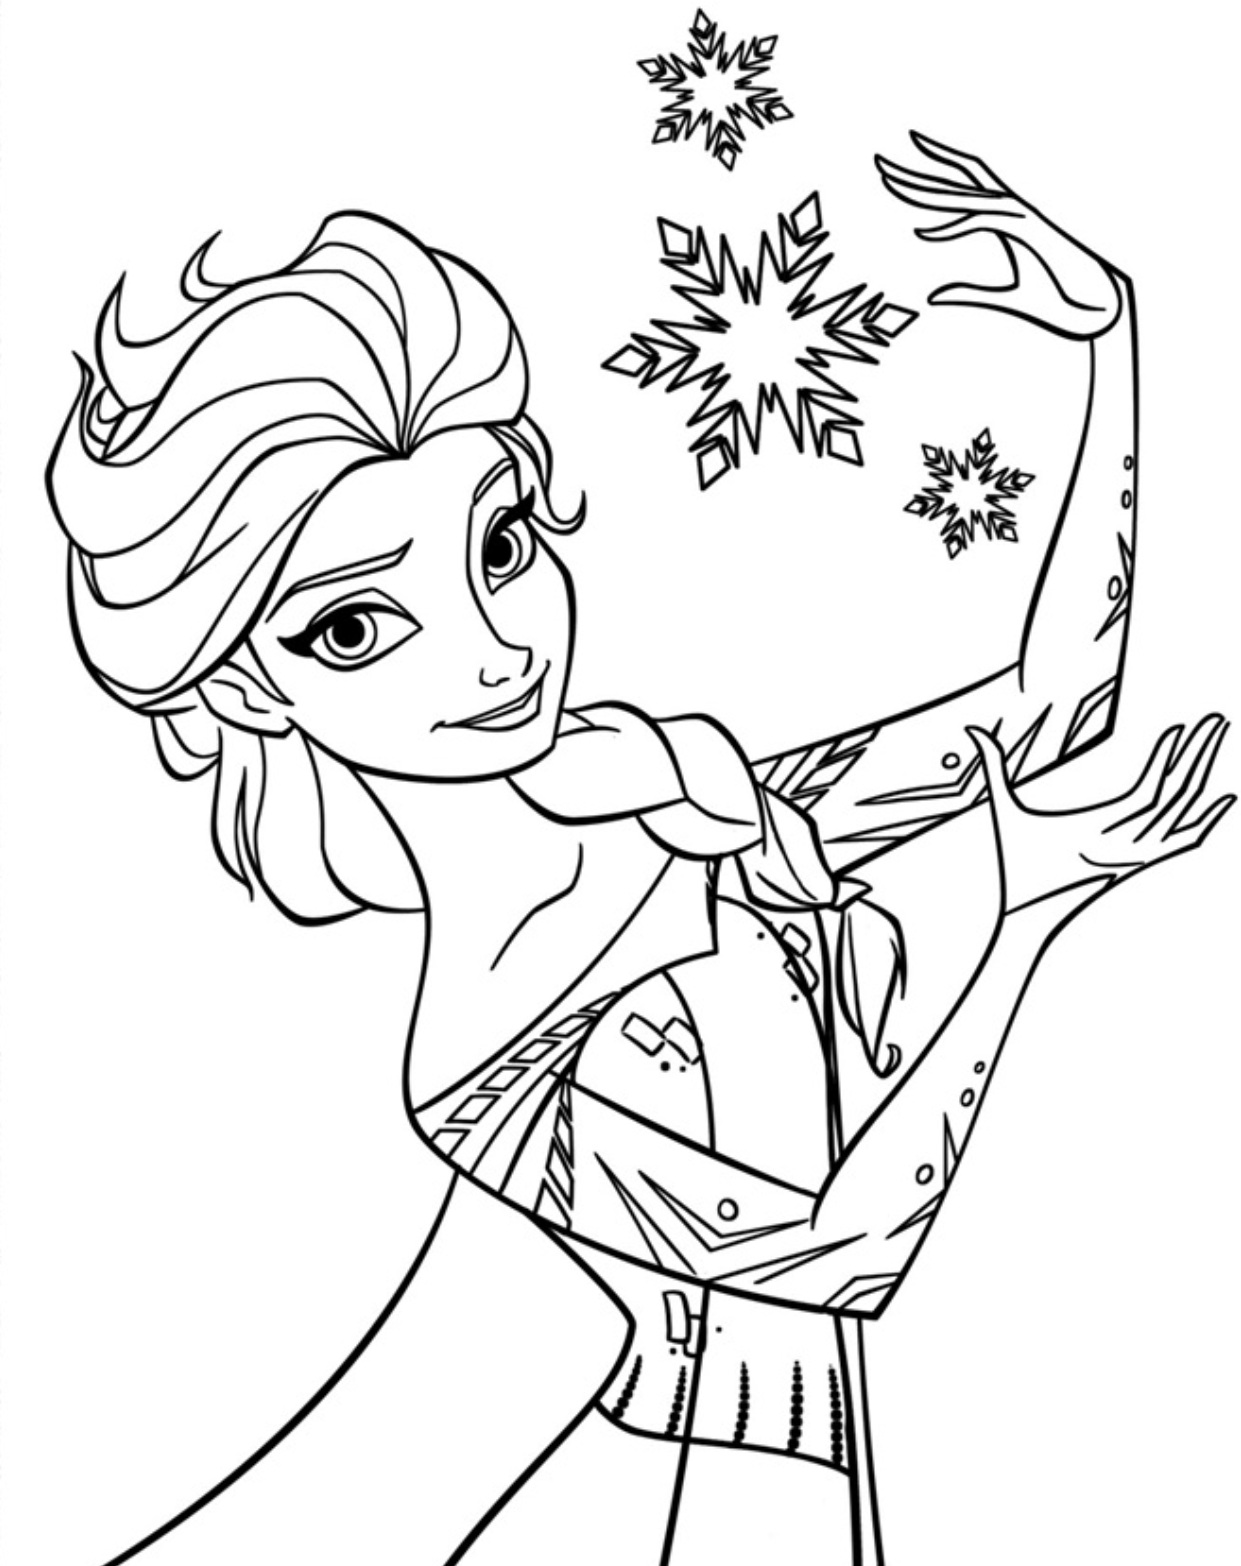 coloring sheet coloring pictures for kids frozens olaf coloring pages best coloring pages for kids pictures coloring for sheet coloring kids